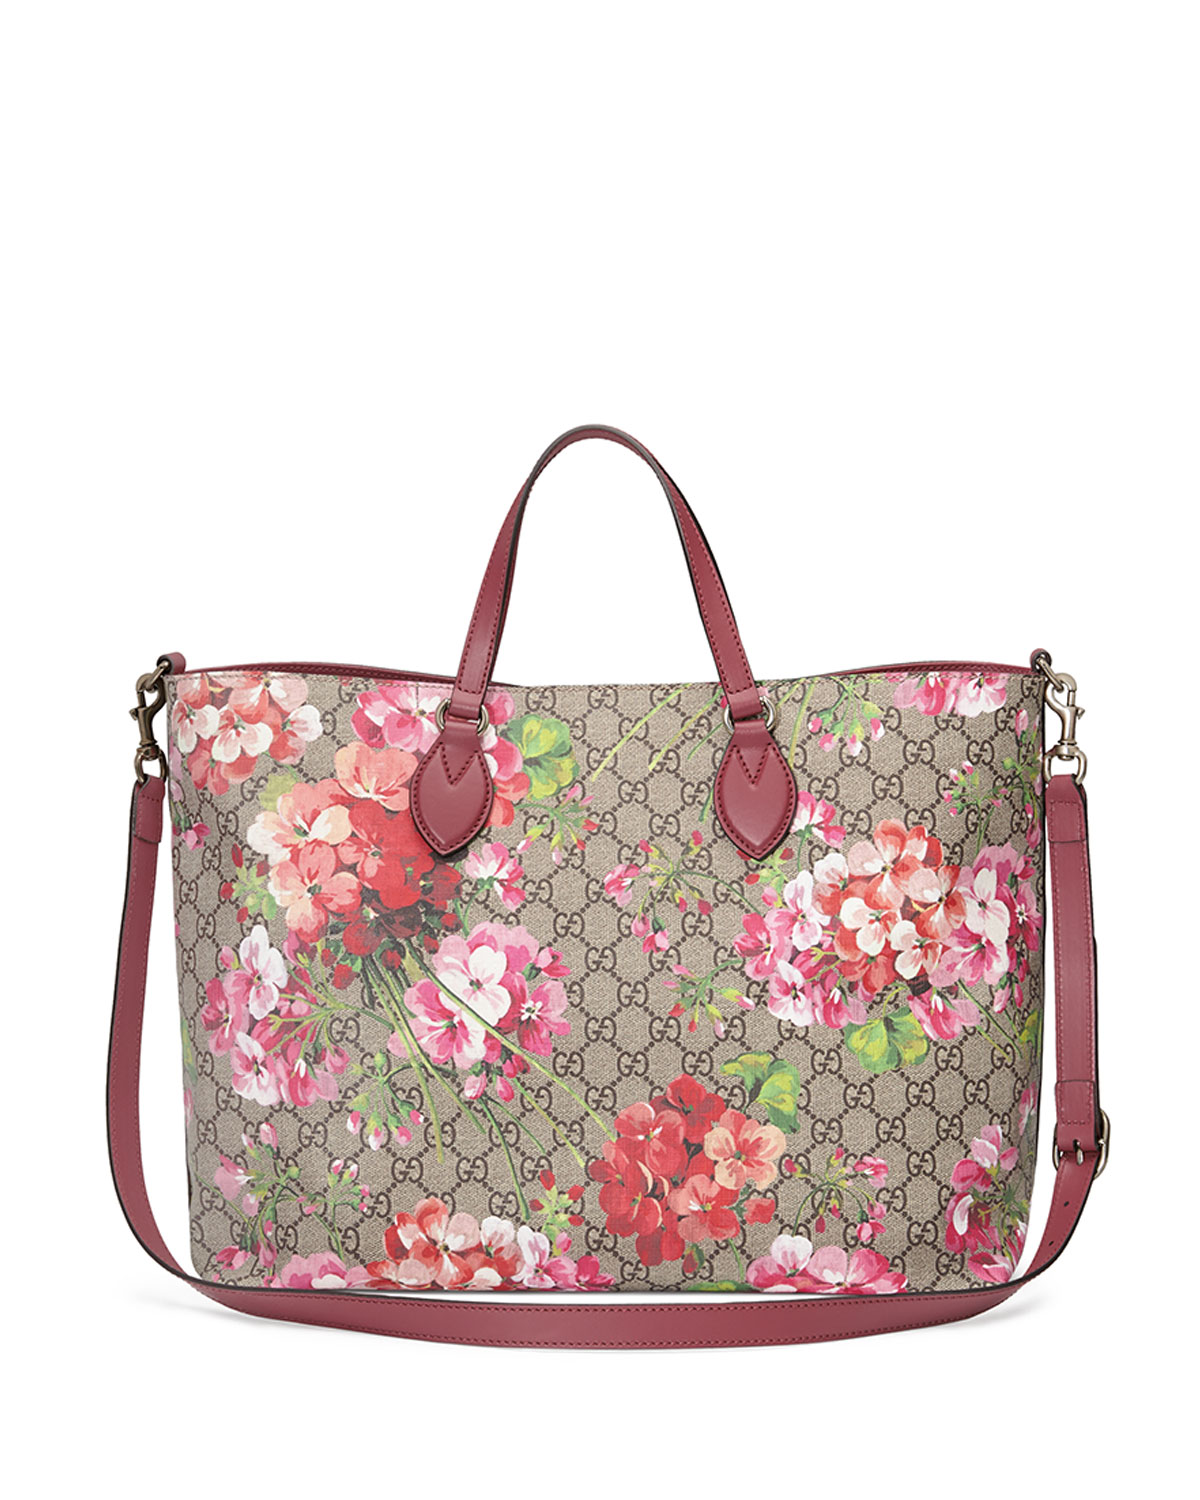 fbbfe8bbe601 Gucci GG Blooms Top-Handle Tote Bag, Rose/Multi | Neiman Marcus